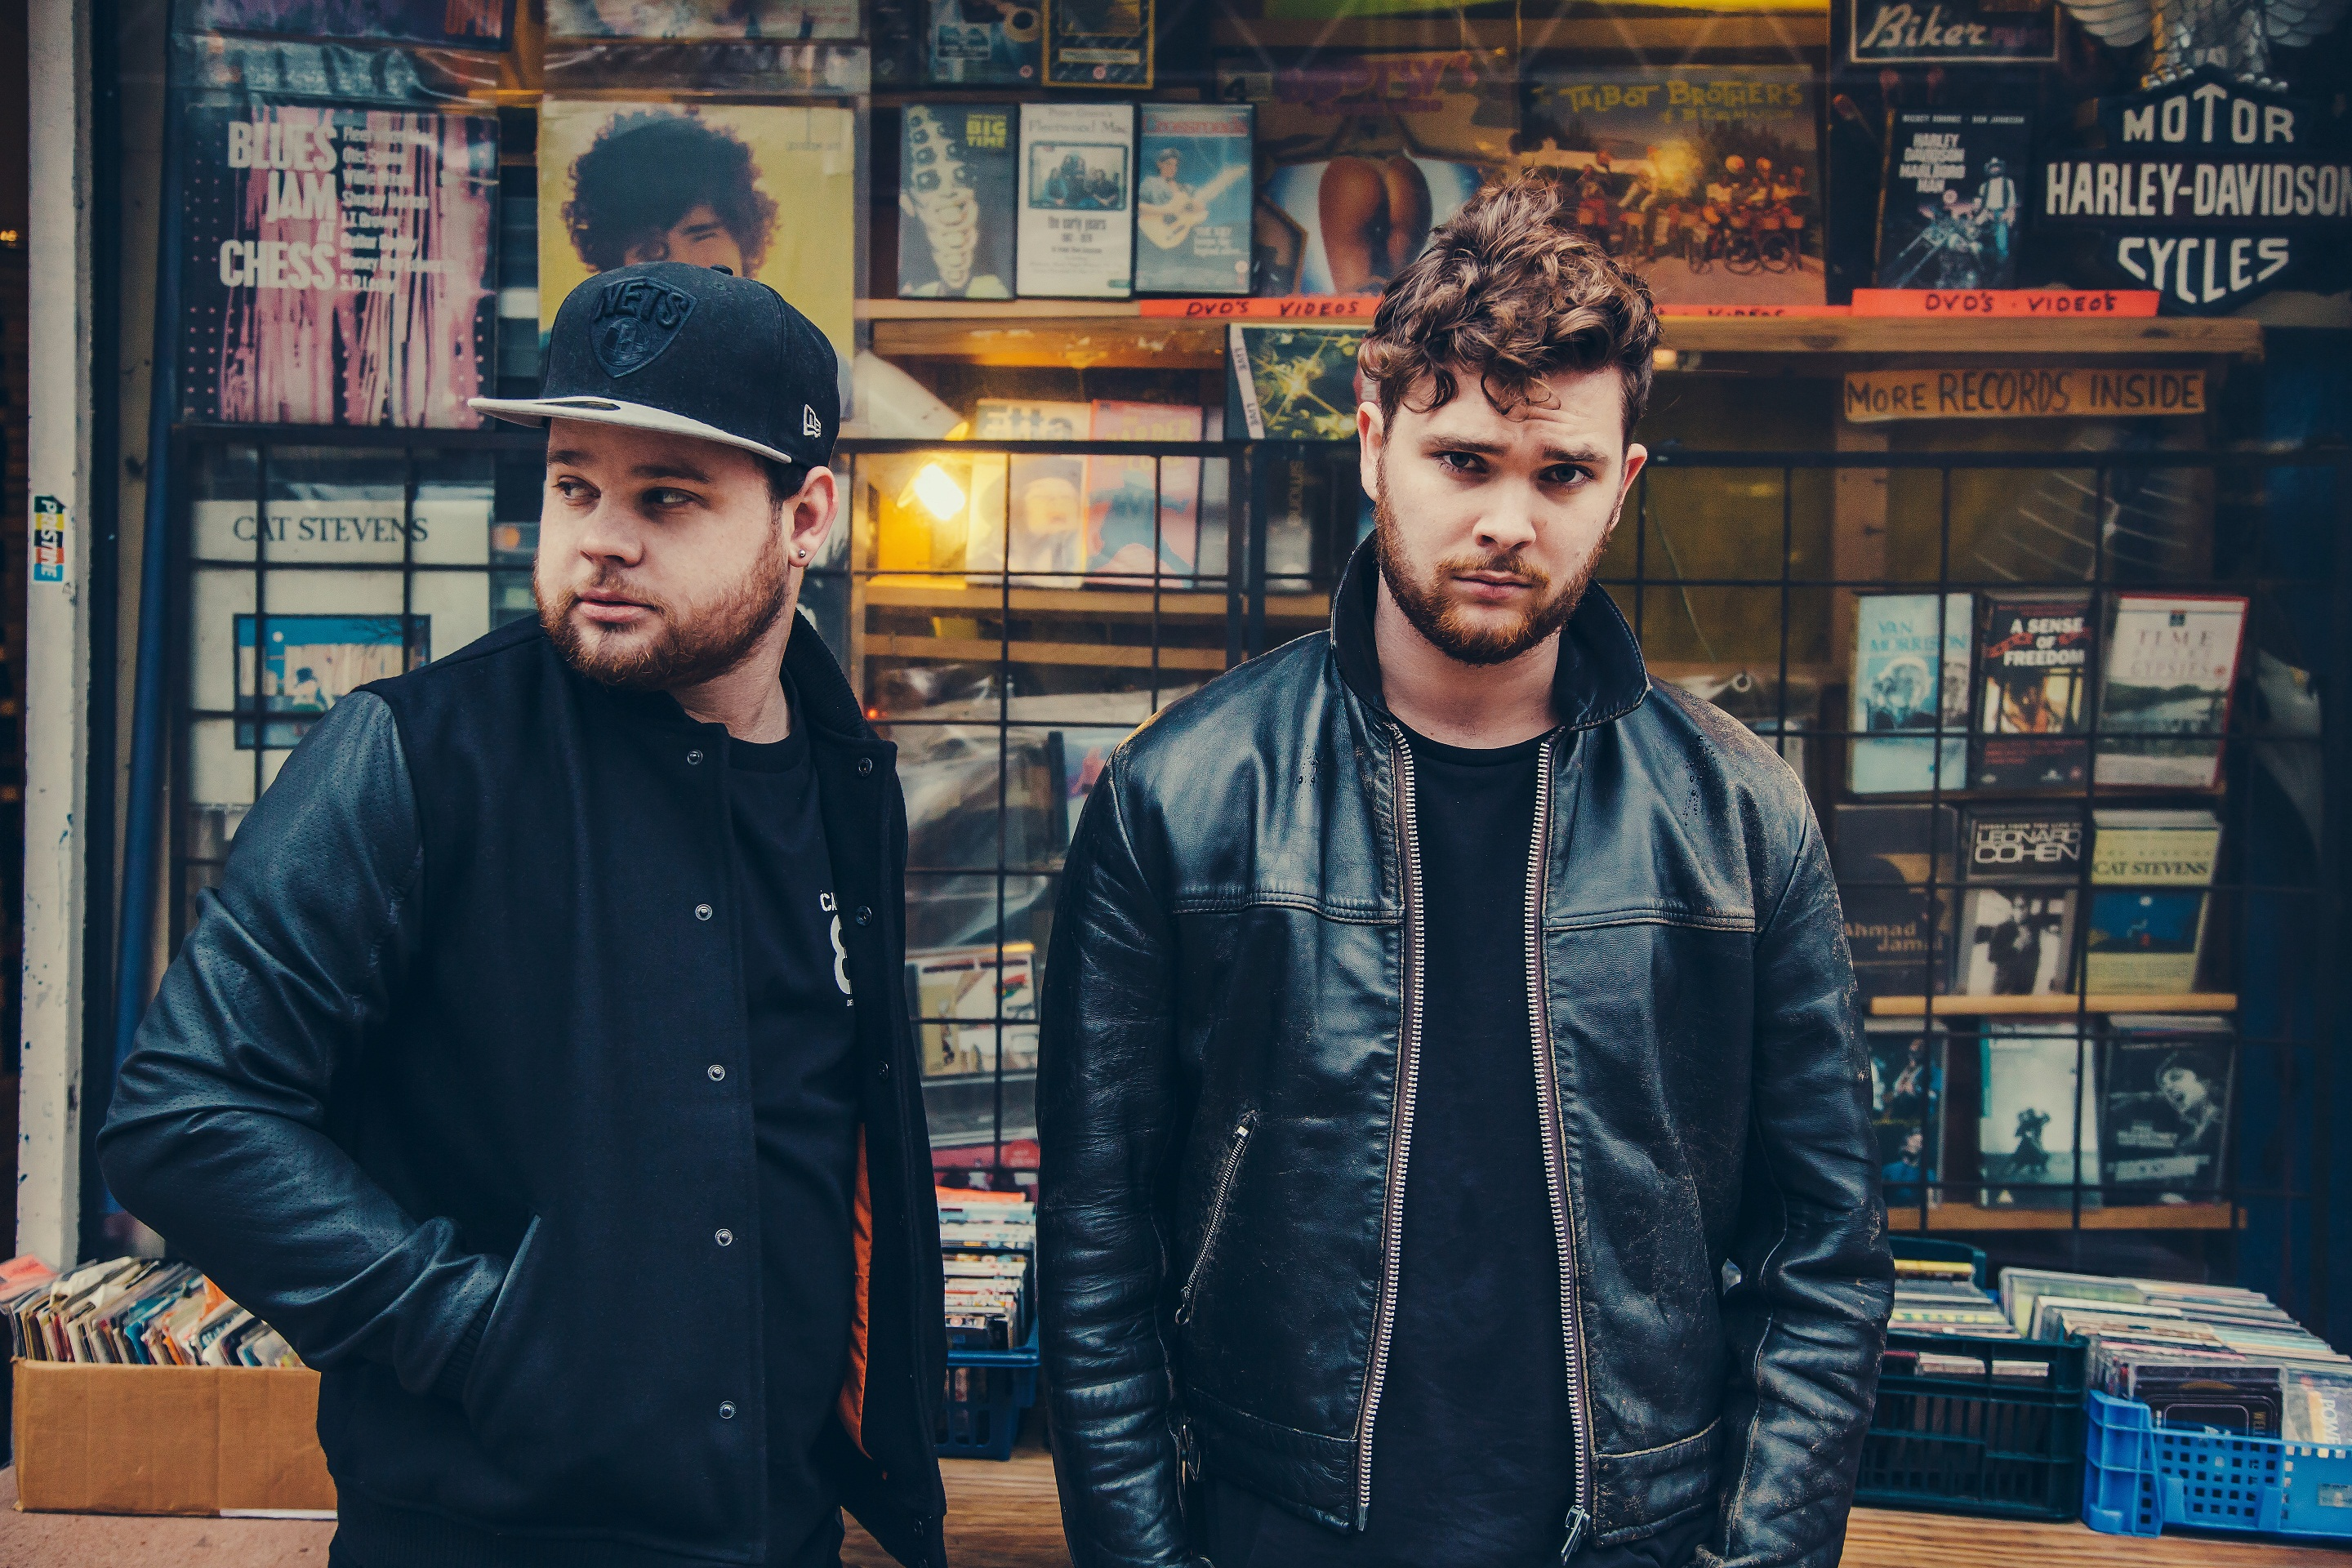 Royal Blood Drop New Video For 'Hook, Line, and Sinker' and Announce New UK Arena Tour